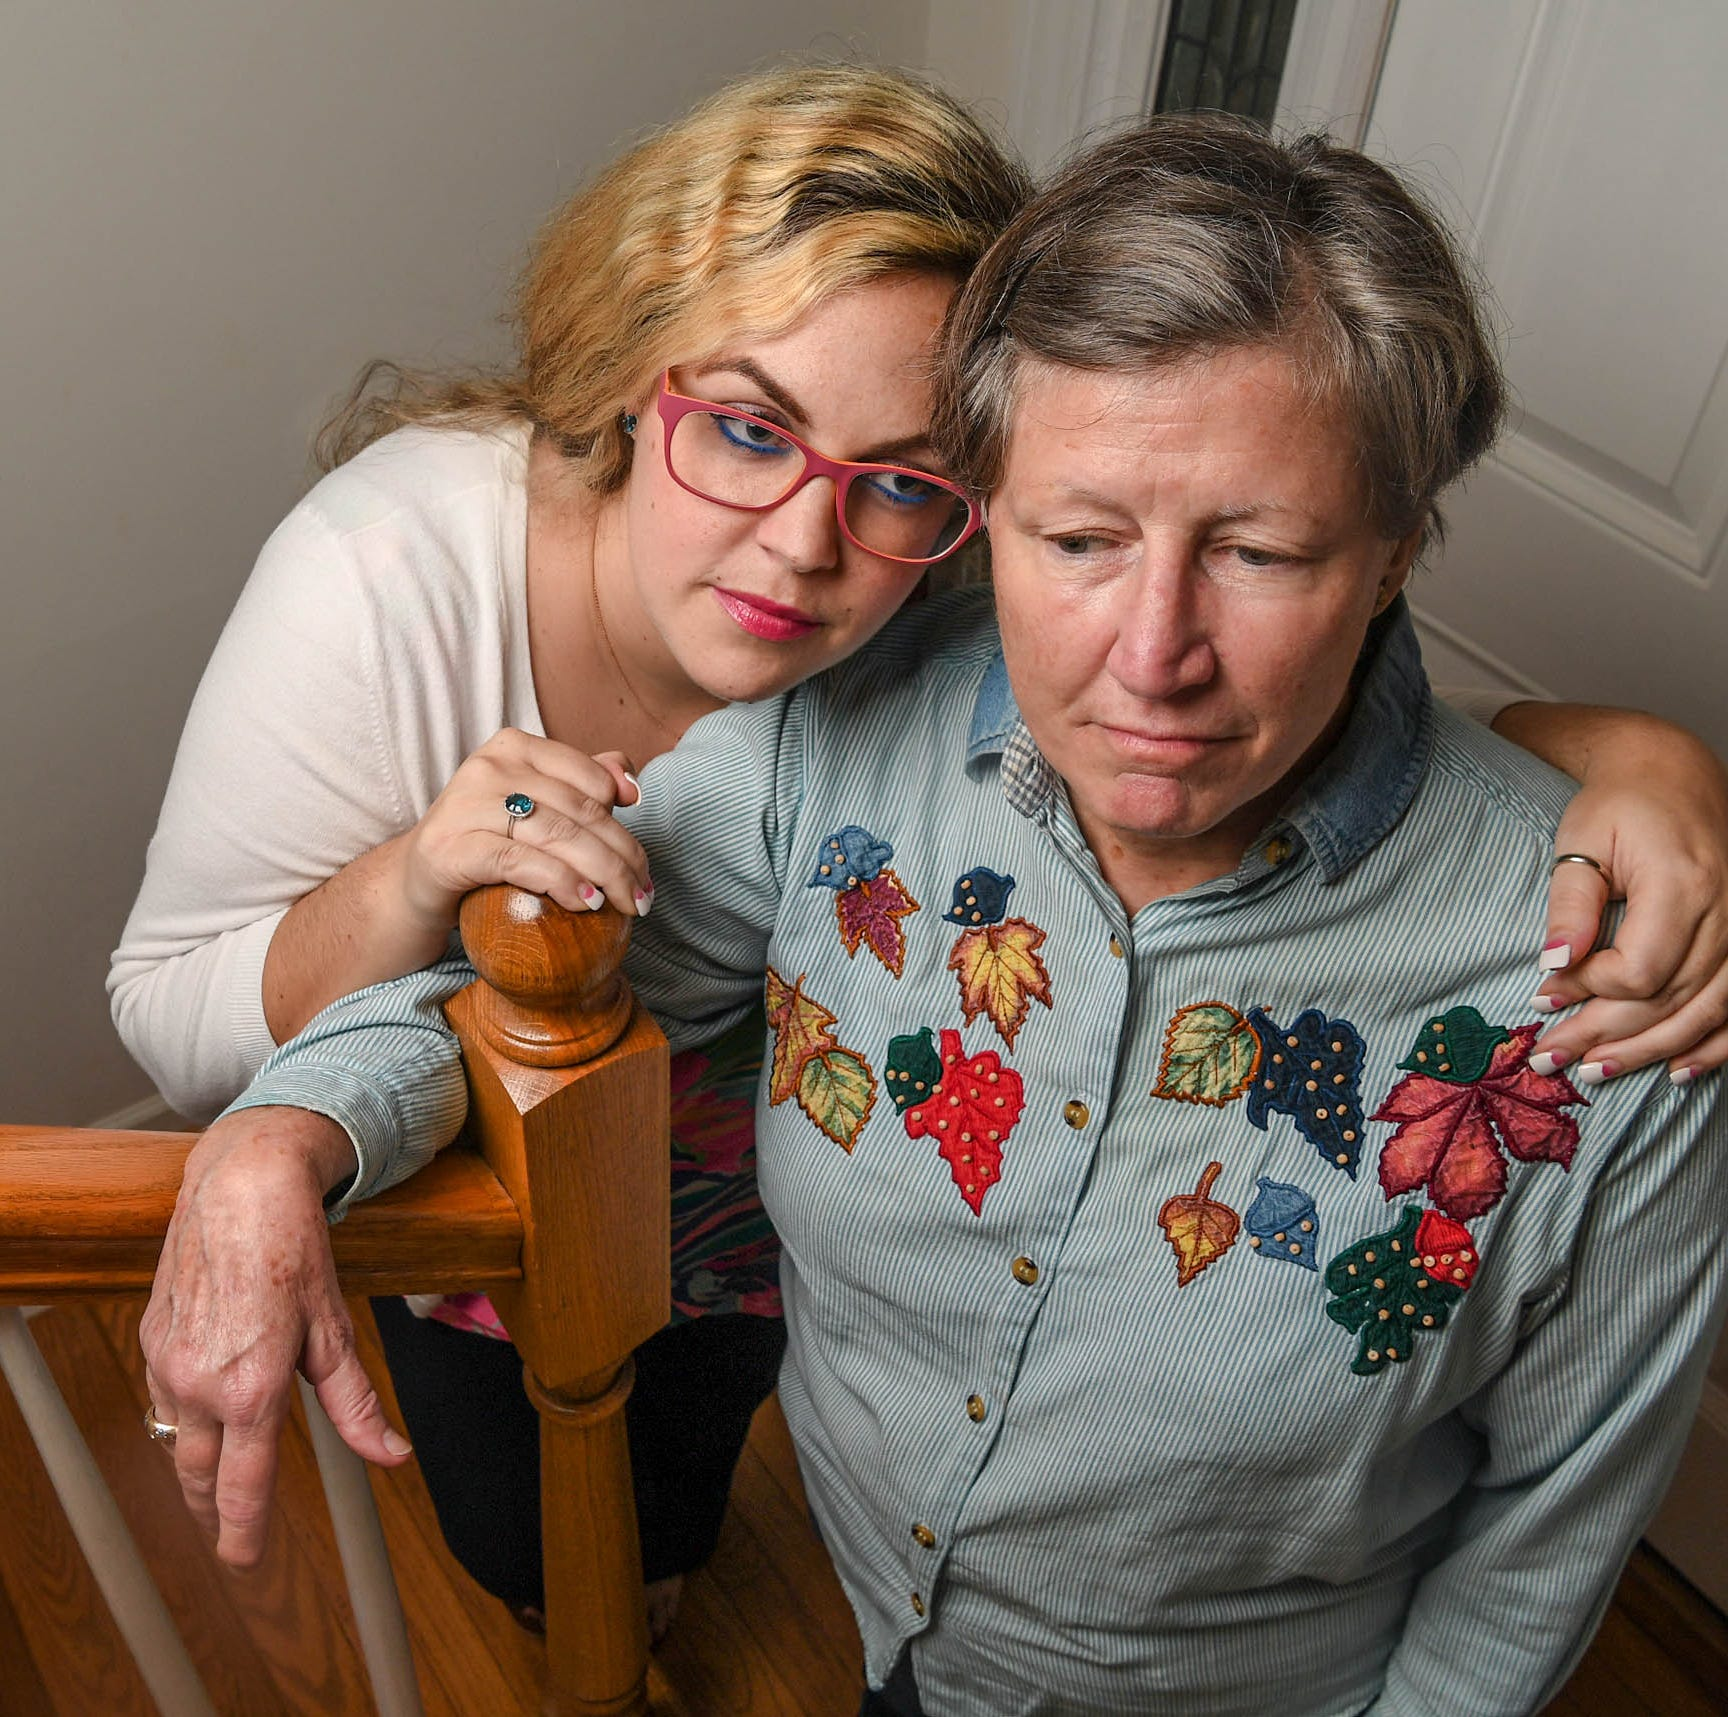 Rising diagnoses of early-onset Alzheimer's leaves loved ones searching for answers